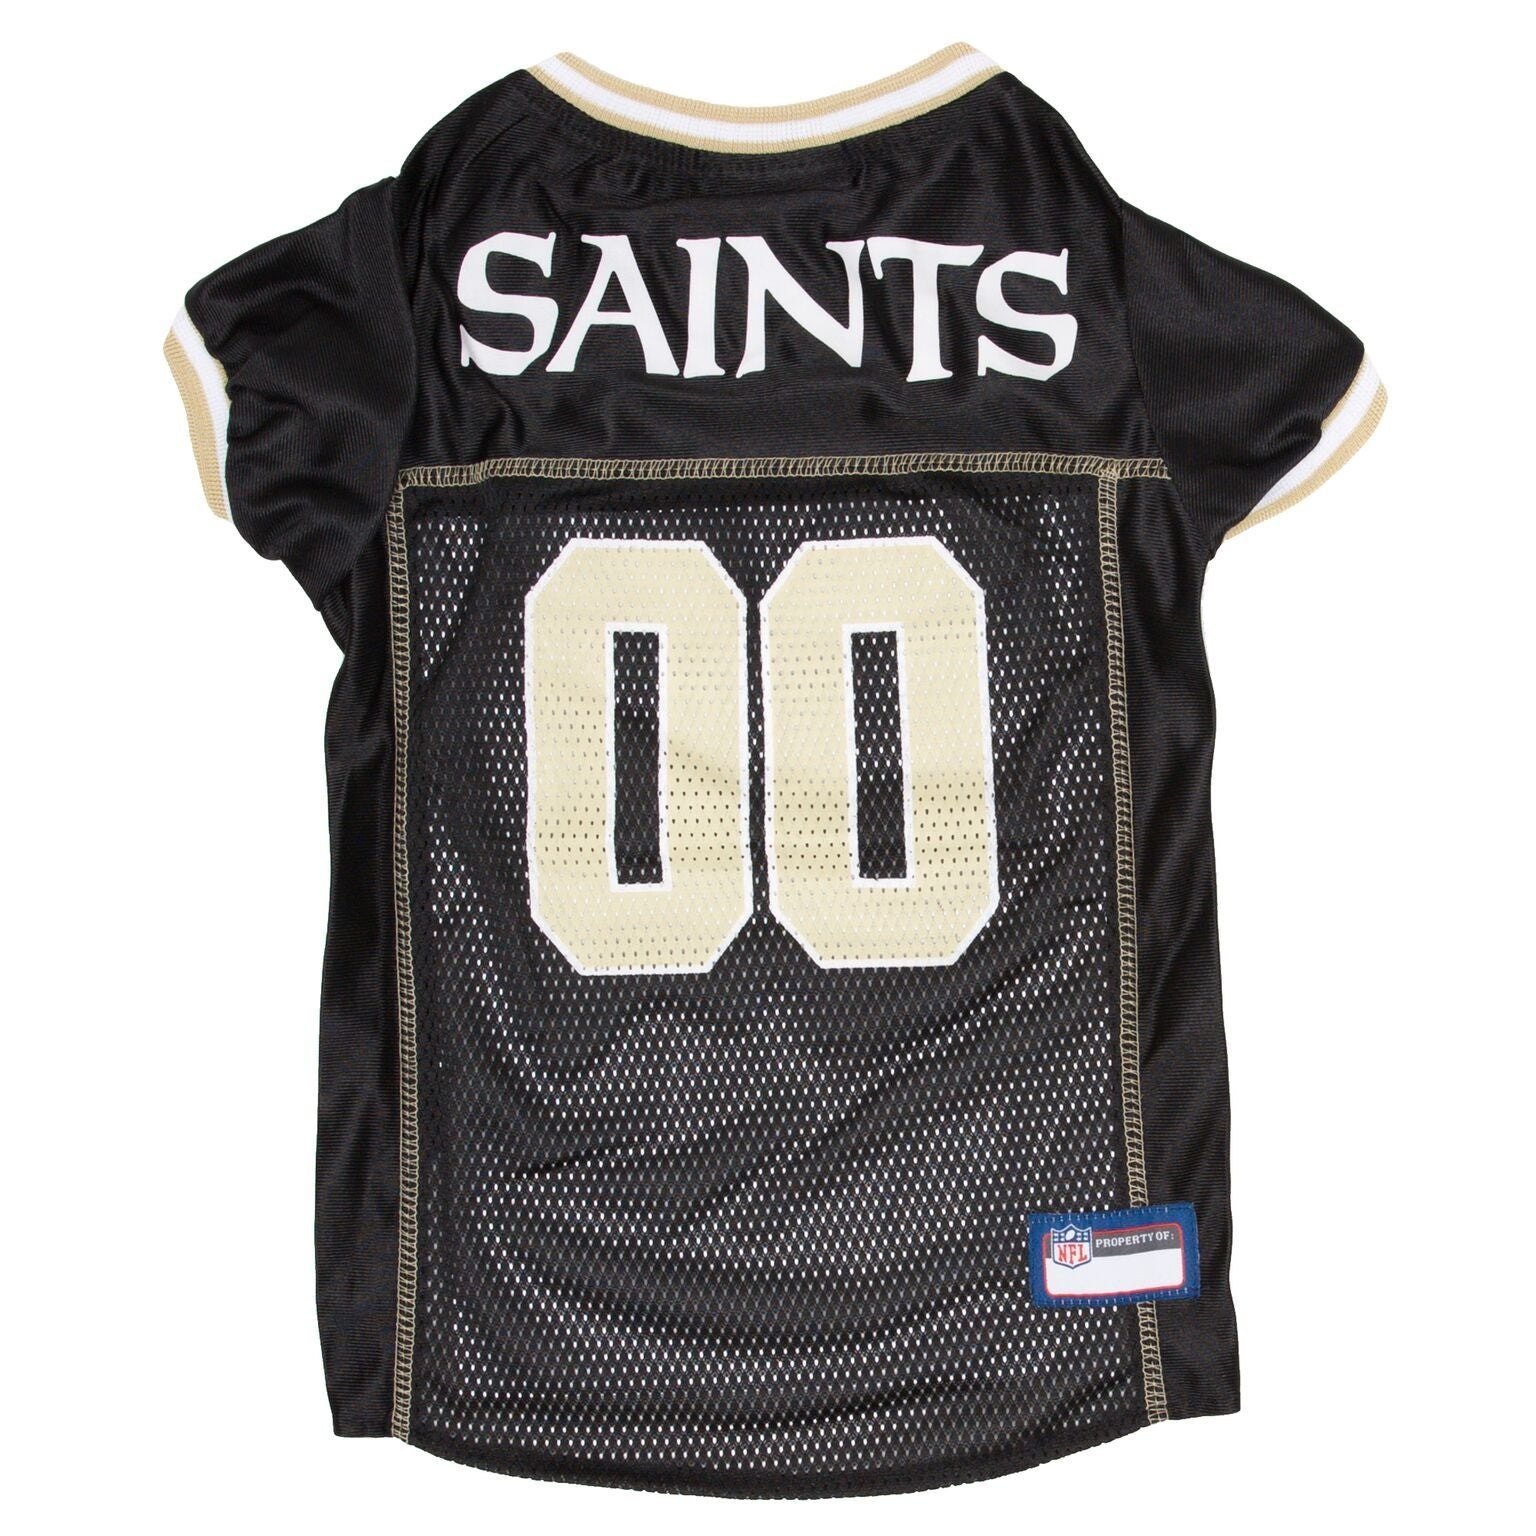 New Orleans Saints Football Jersey Cheerleading Uniform Collar Leash - Jersey Champs - Custom Basketball, Baseball, Football & Hockey Jerseys